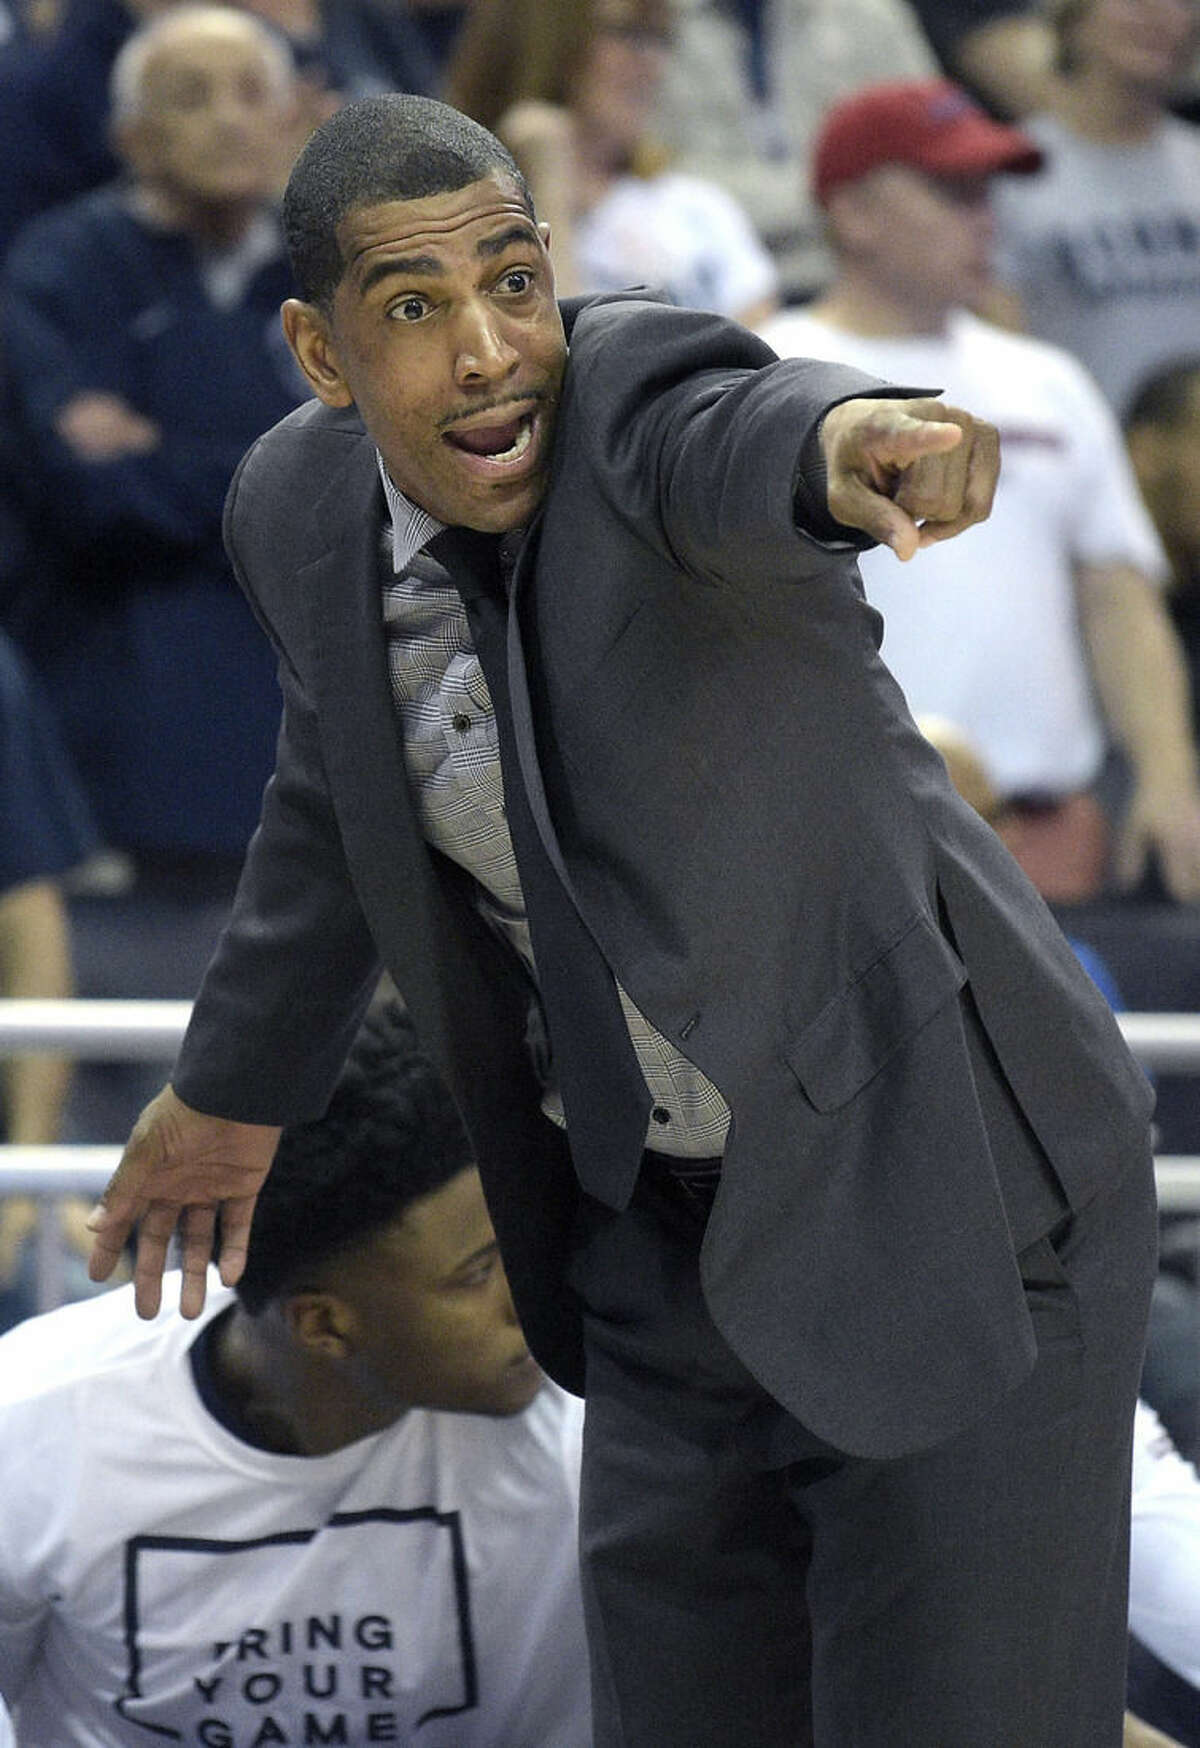 Connecticut head coach Kevin Ollie shouts instructions from the sideline during the first half of an NCAA college basketball game against Memphis in the finals of the American Athletic Conference men's tournament in Orlando, Fla., Sunday, March 13, 2016. (AP Photo/Phelan M. Ebenhack)